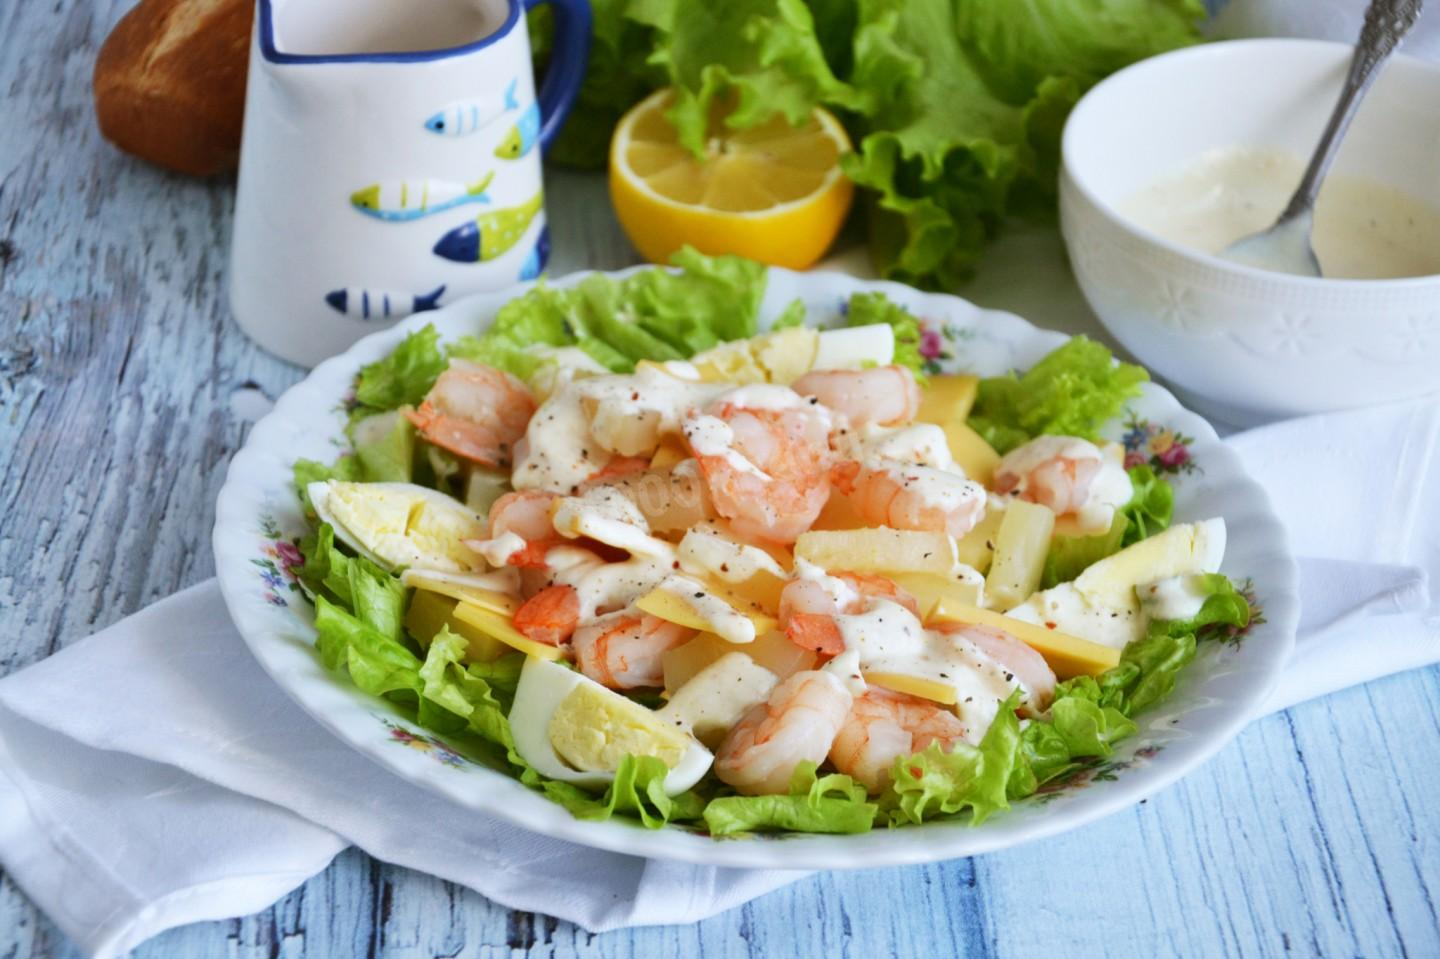 SALAD WITH PINEAPPLE SHRIMPS AND CHEESE